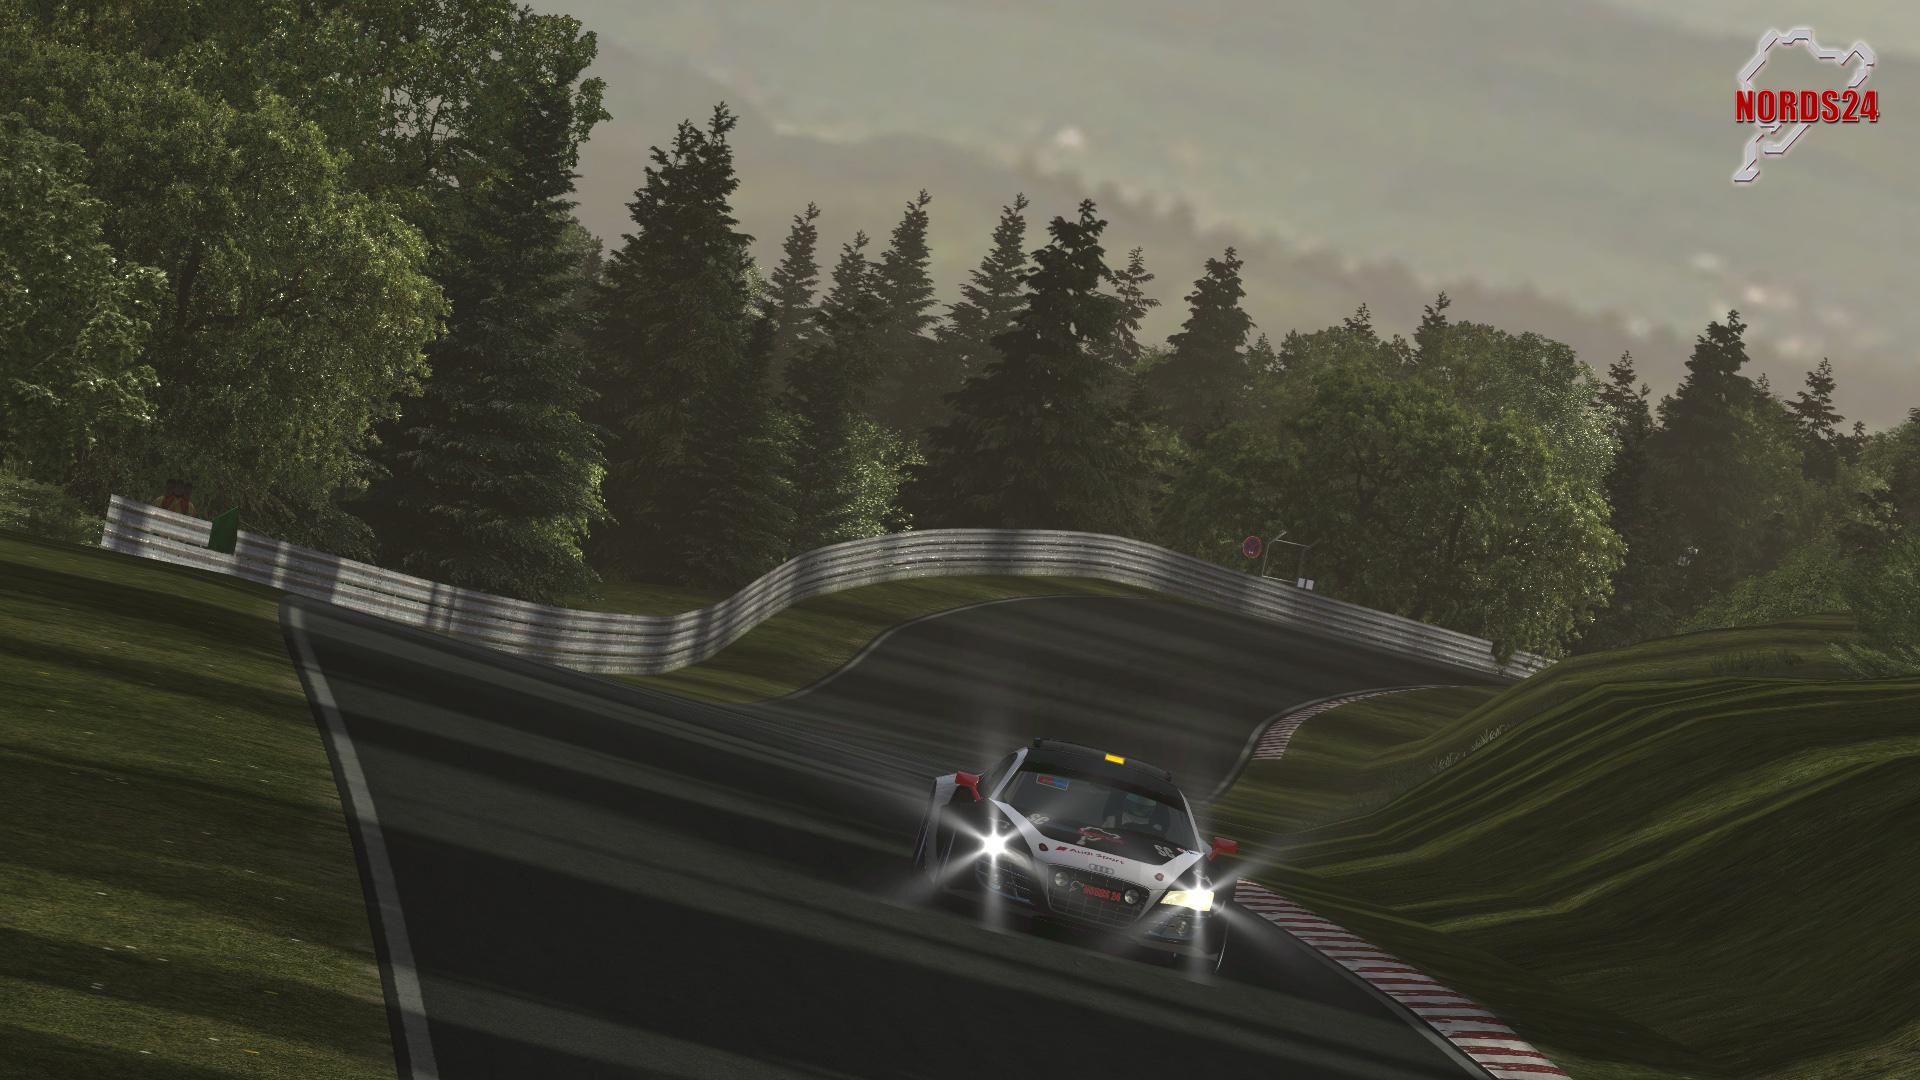 24 hours of the Nordschleife